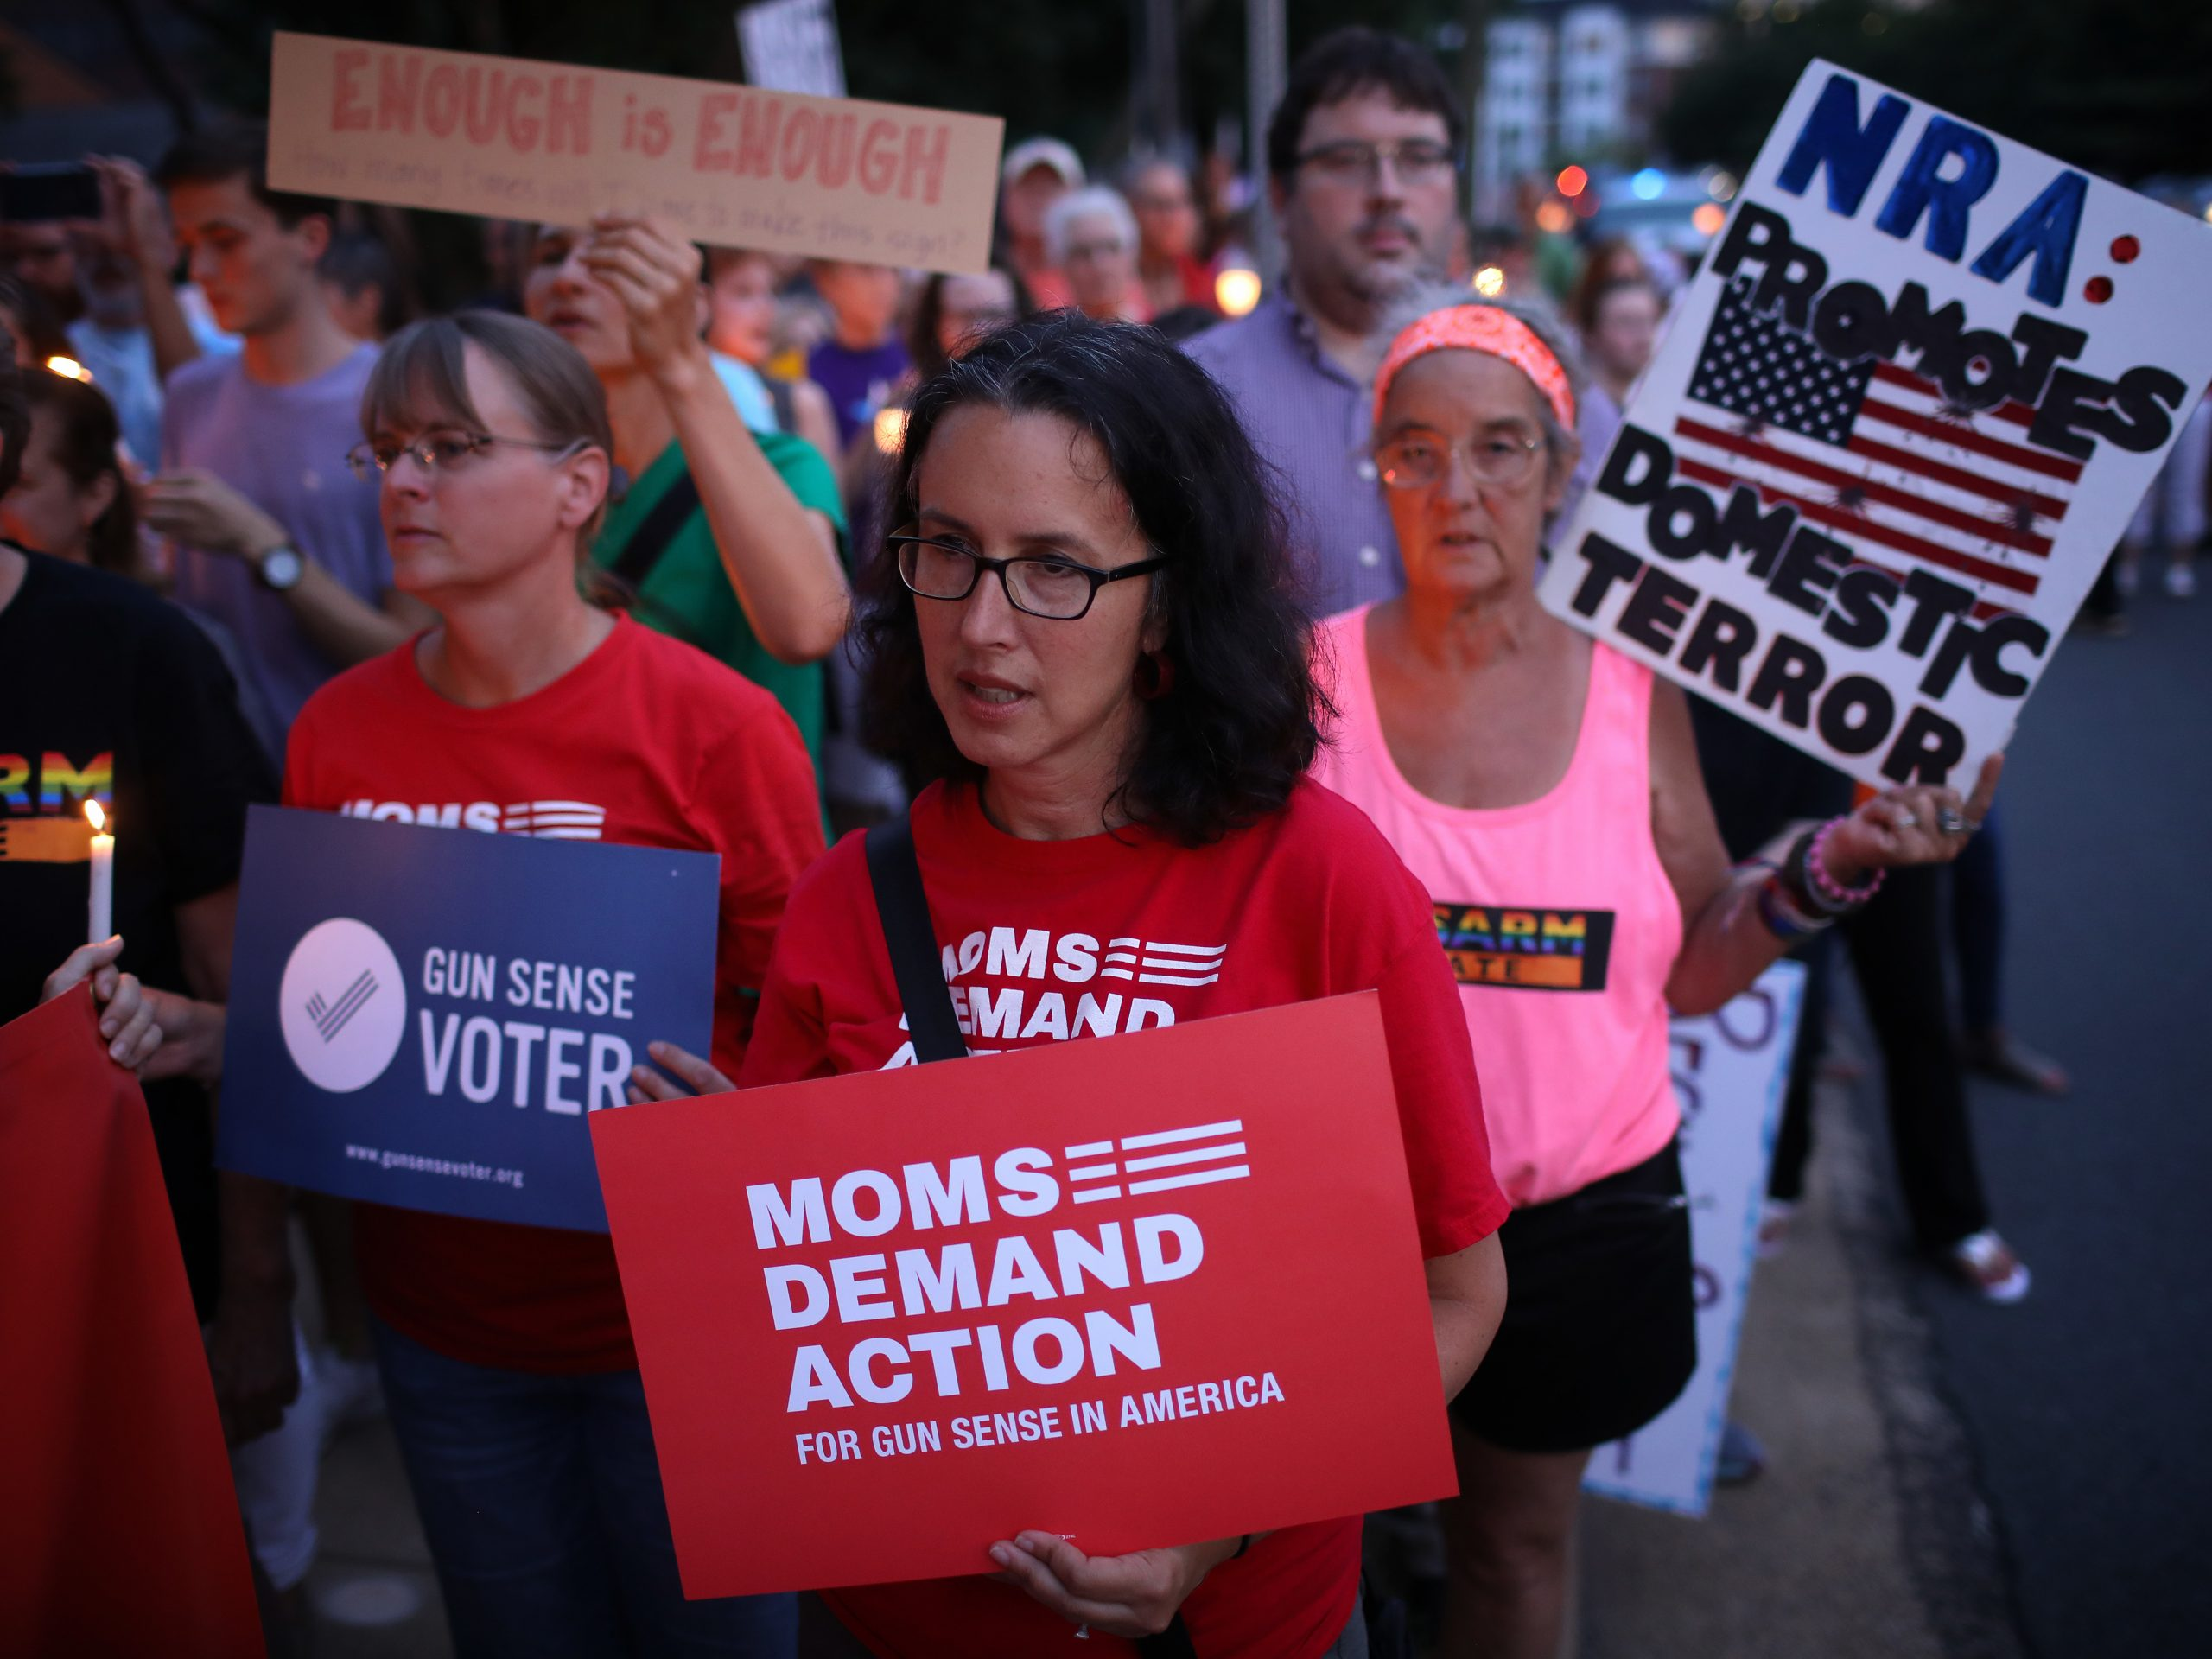 Advocates of stricter gun legislation hold a candlelight vigil for victims of recent mass shootings outside the headquarters of the National Rifle Association on Monday in Fairfax, Va.